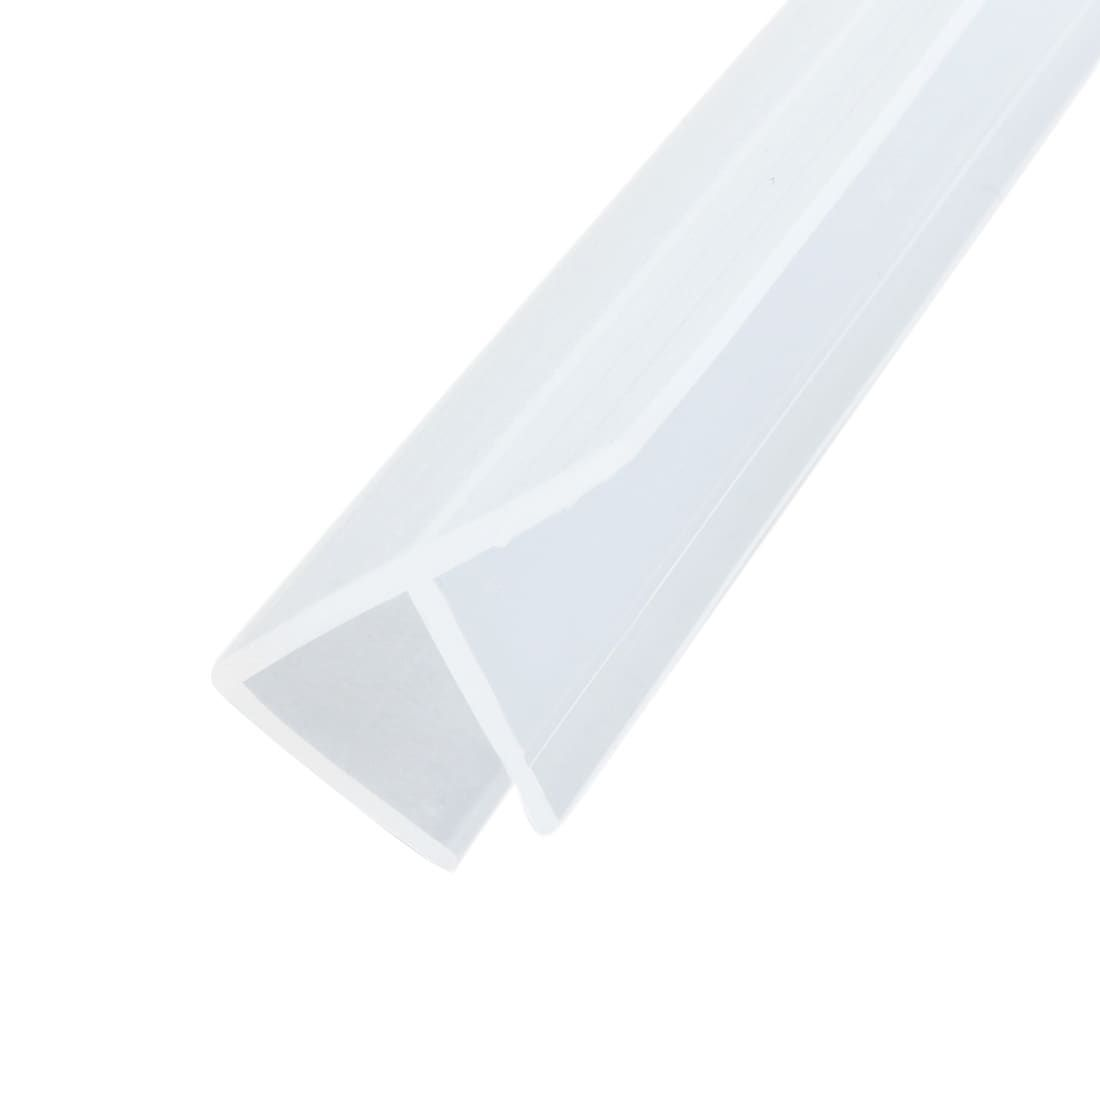 39 Inch F Shaped Frameless Window Shower Door Seal Clear For 3 8